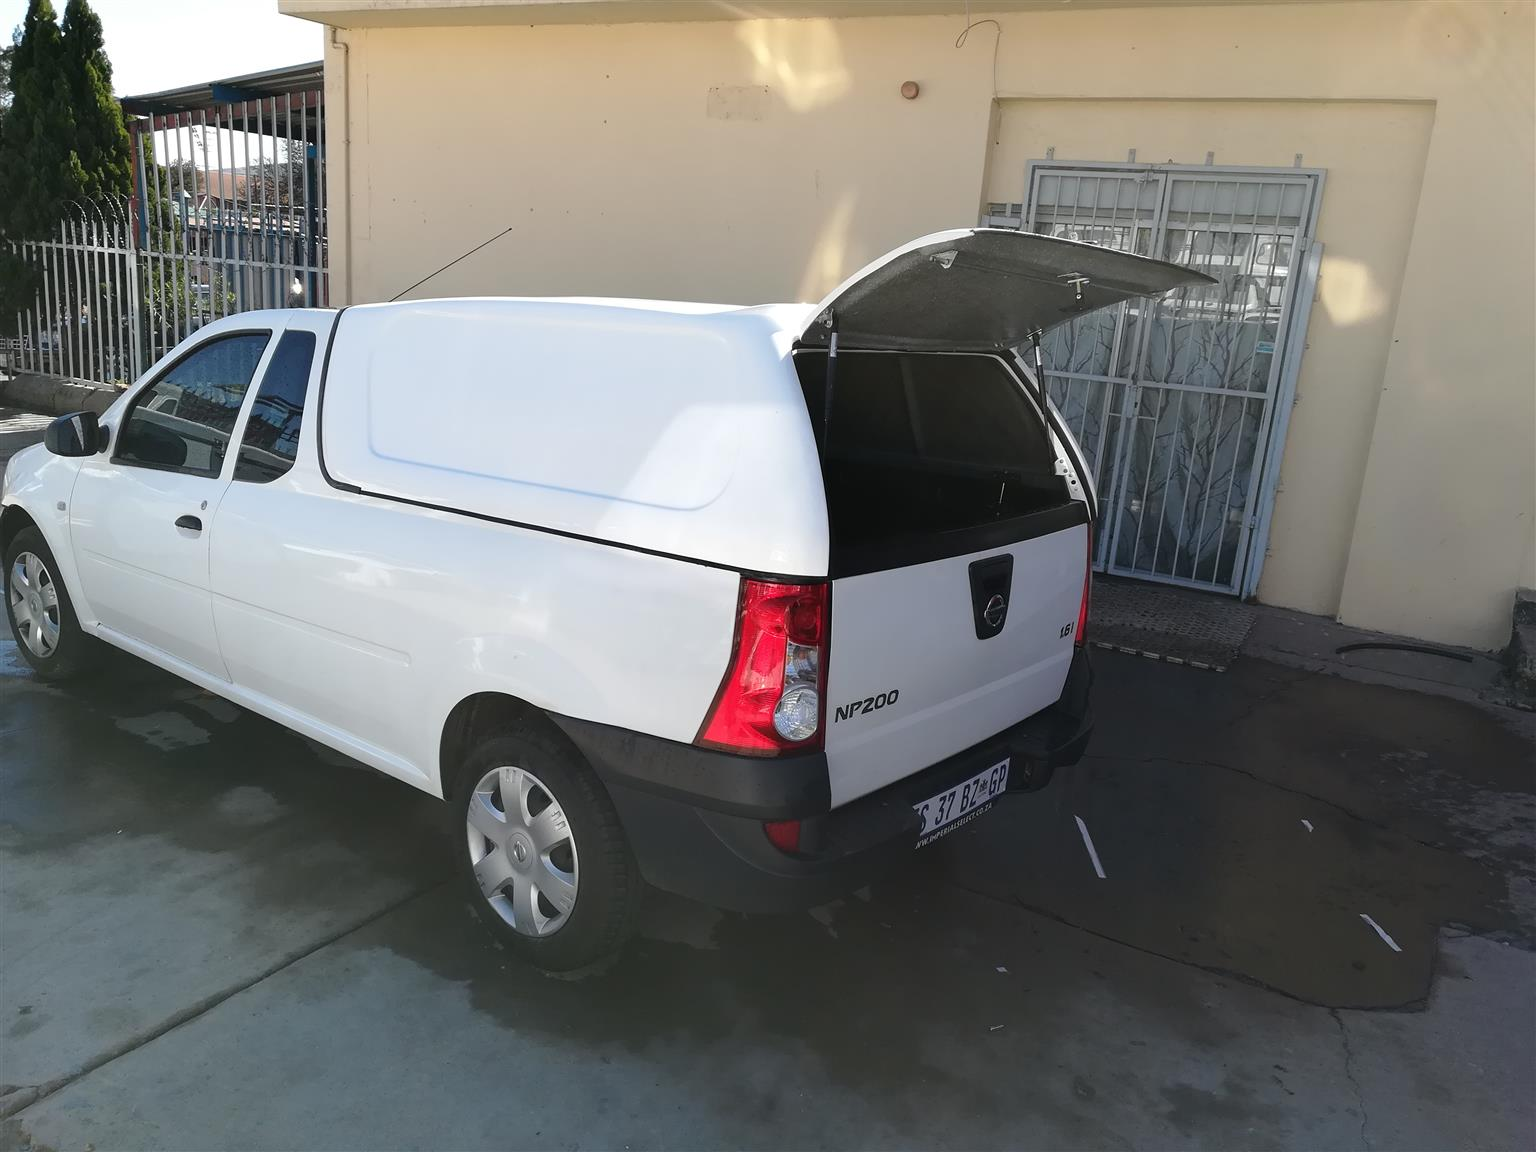 2019 Nissan NP200 Brand New Gc Blindside Bakkie Canopy for sale!!